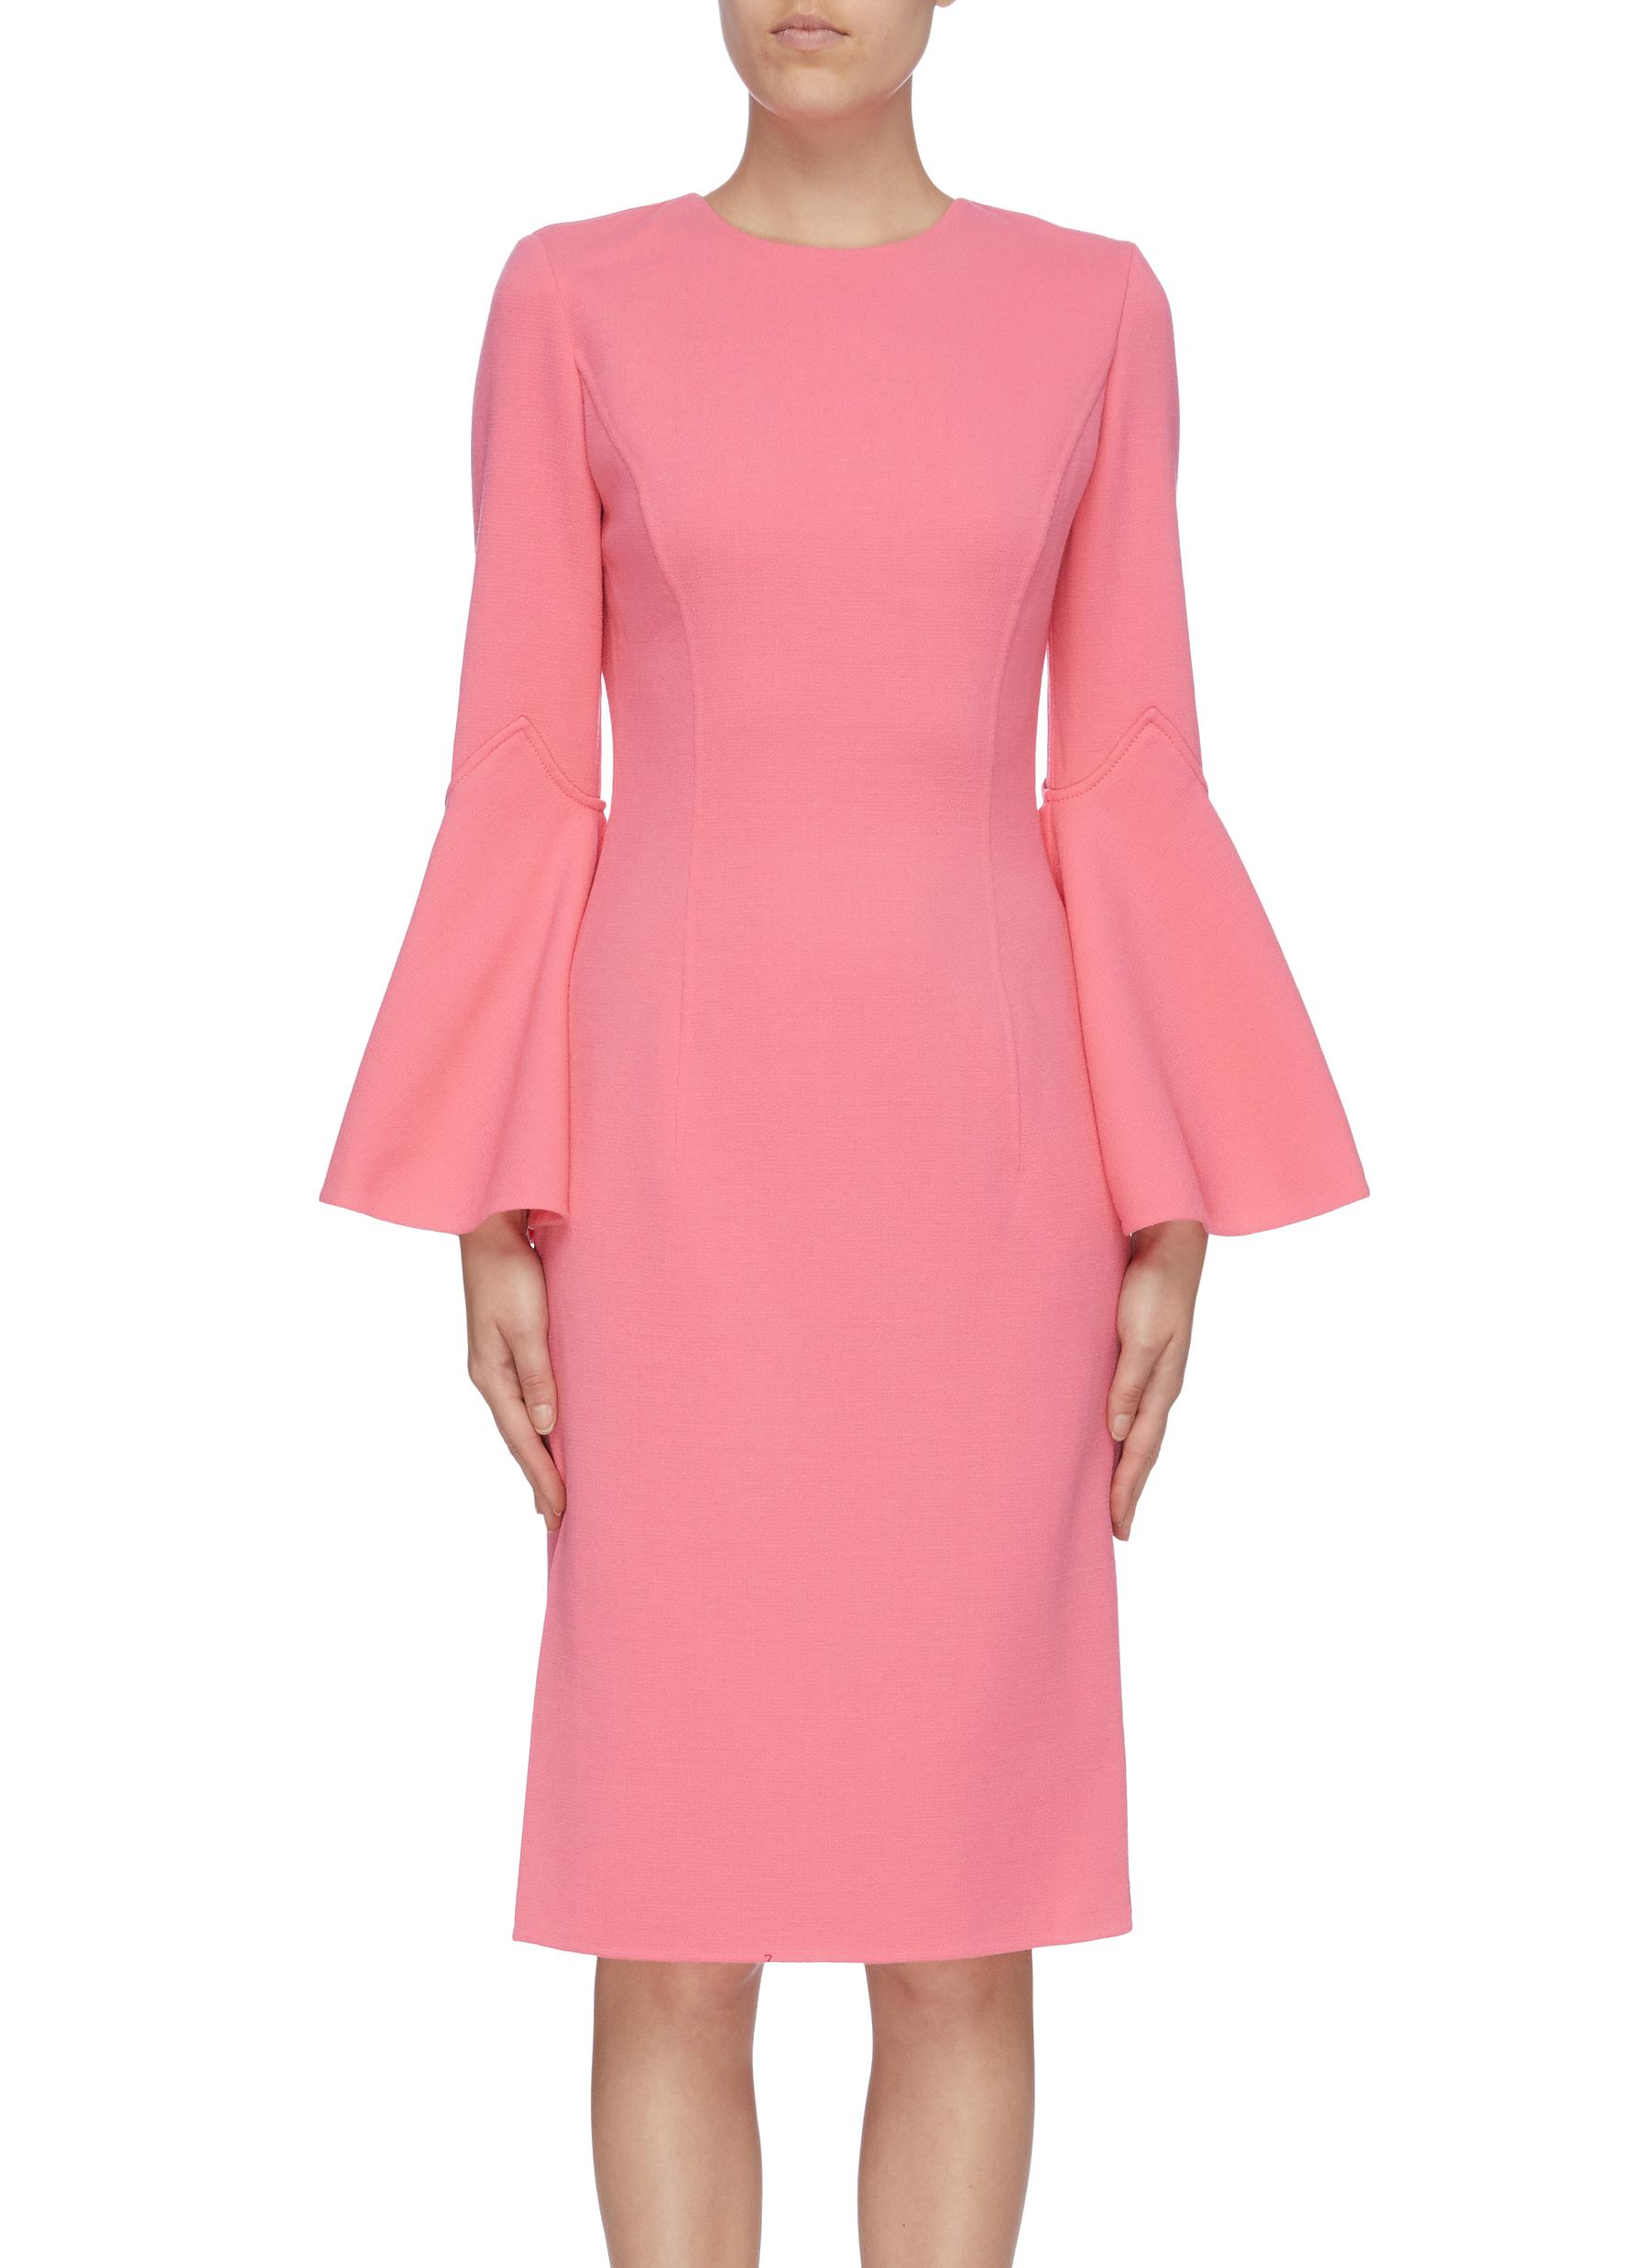 Flared sleeve dress by Oscar De La Renta